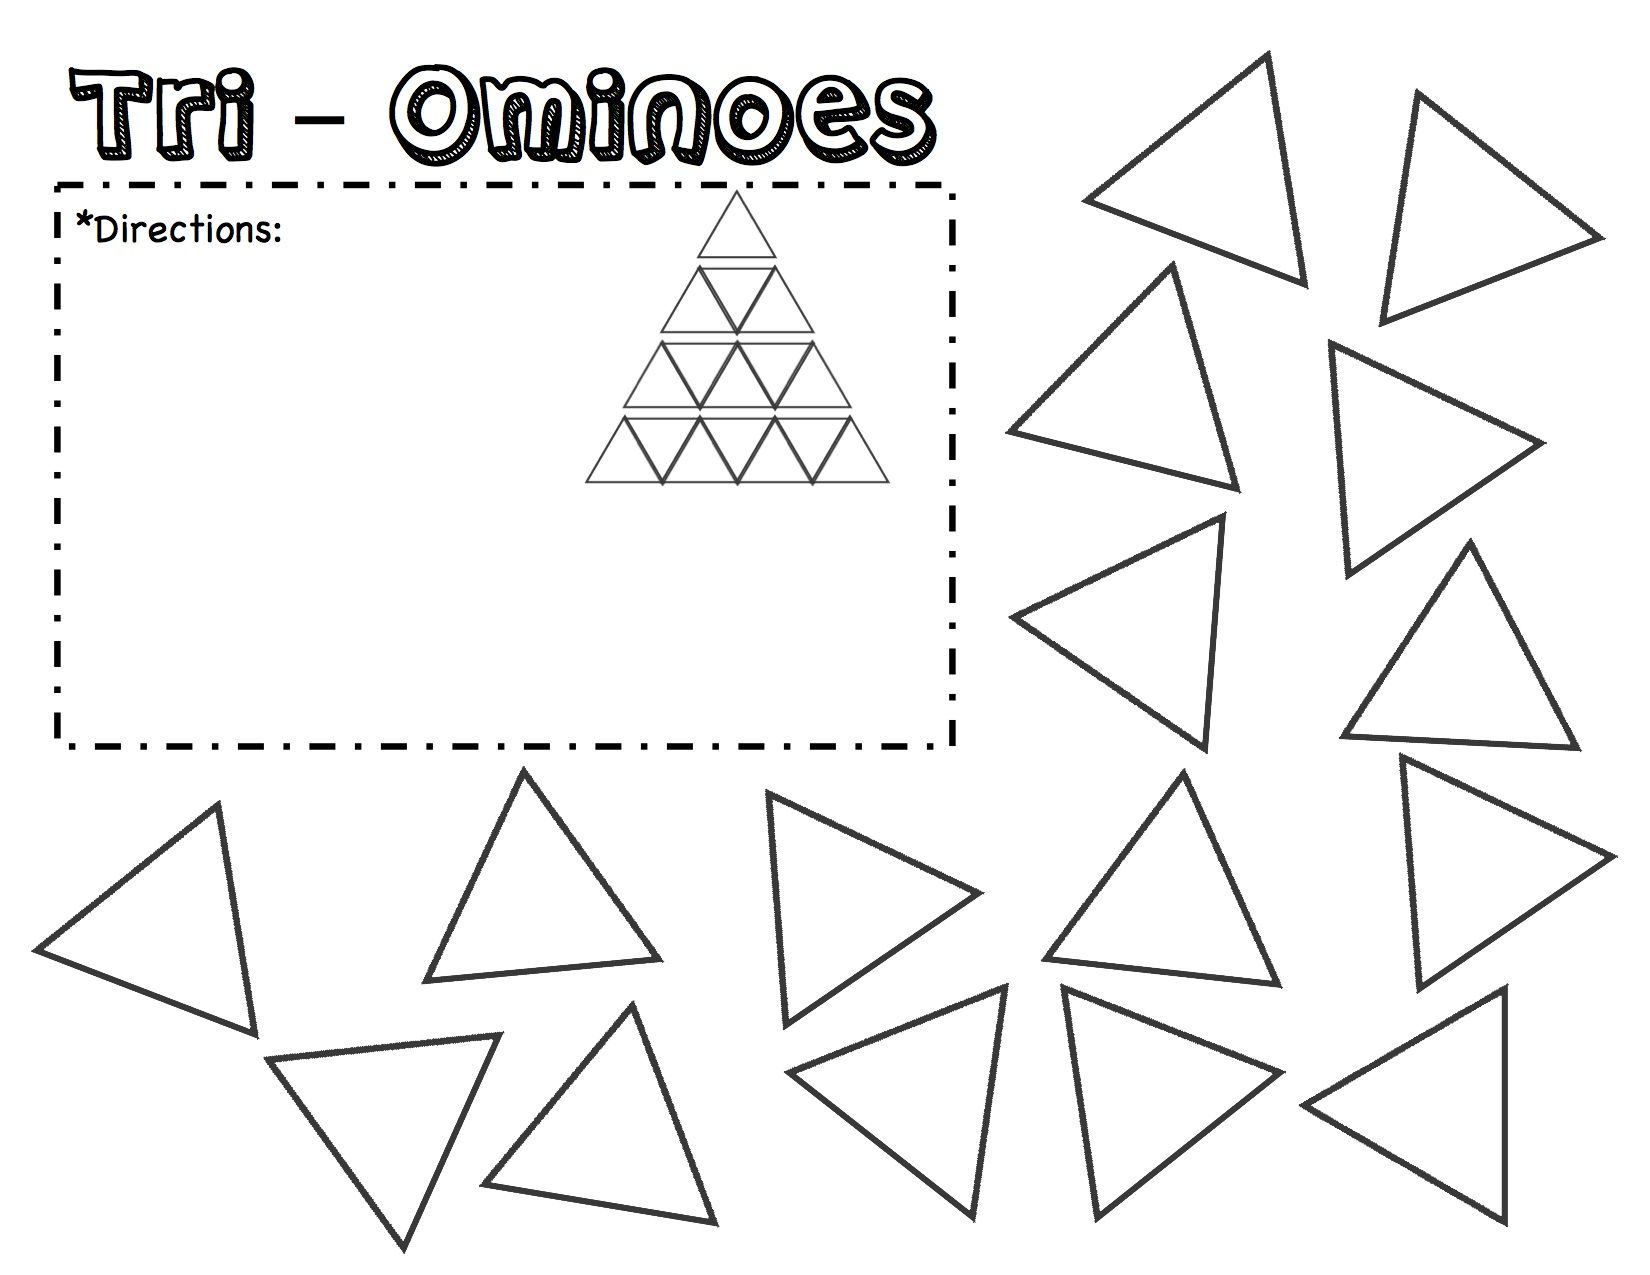 TriOminoes Puzzle Template Printable. Fill in the